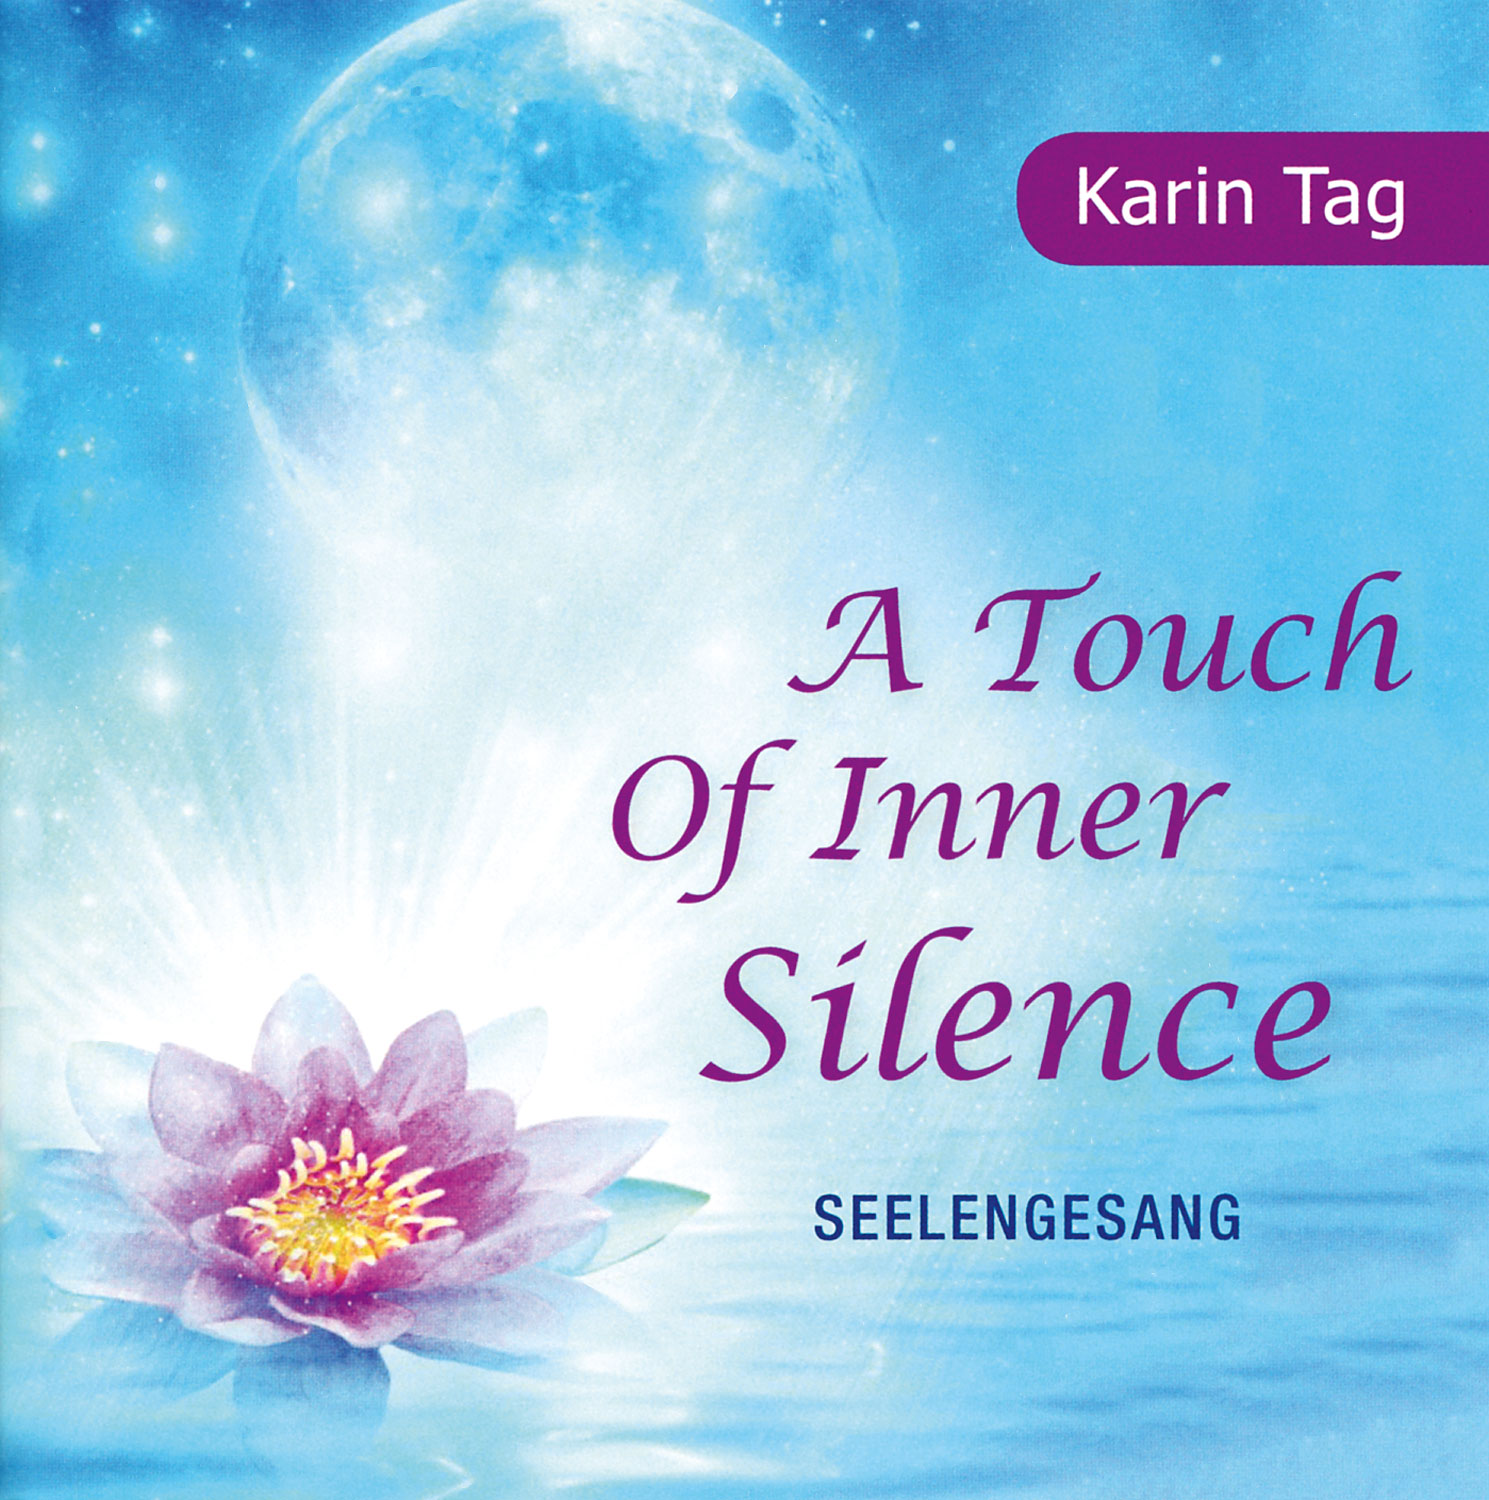 A Touch of Inner Silence